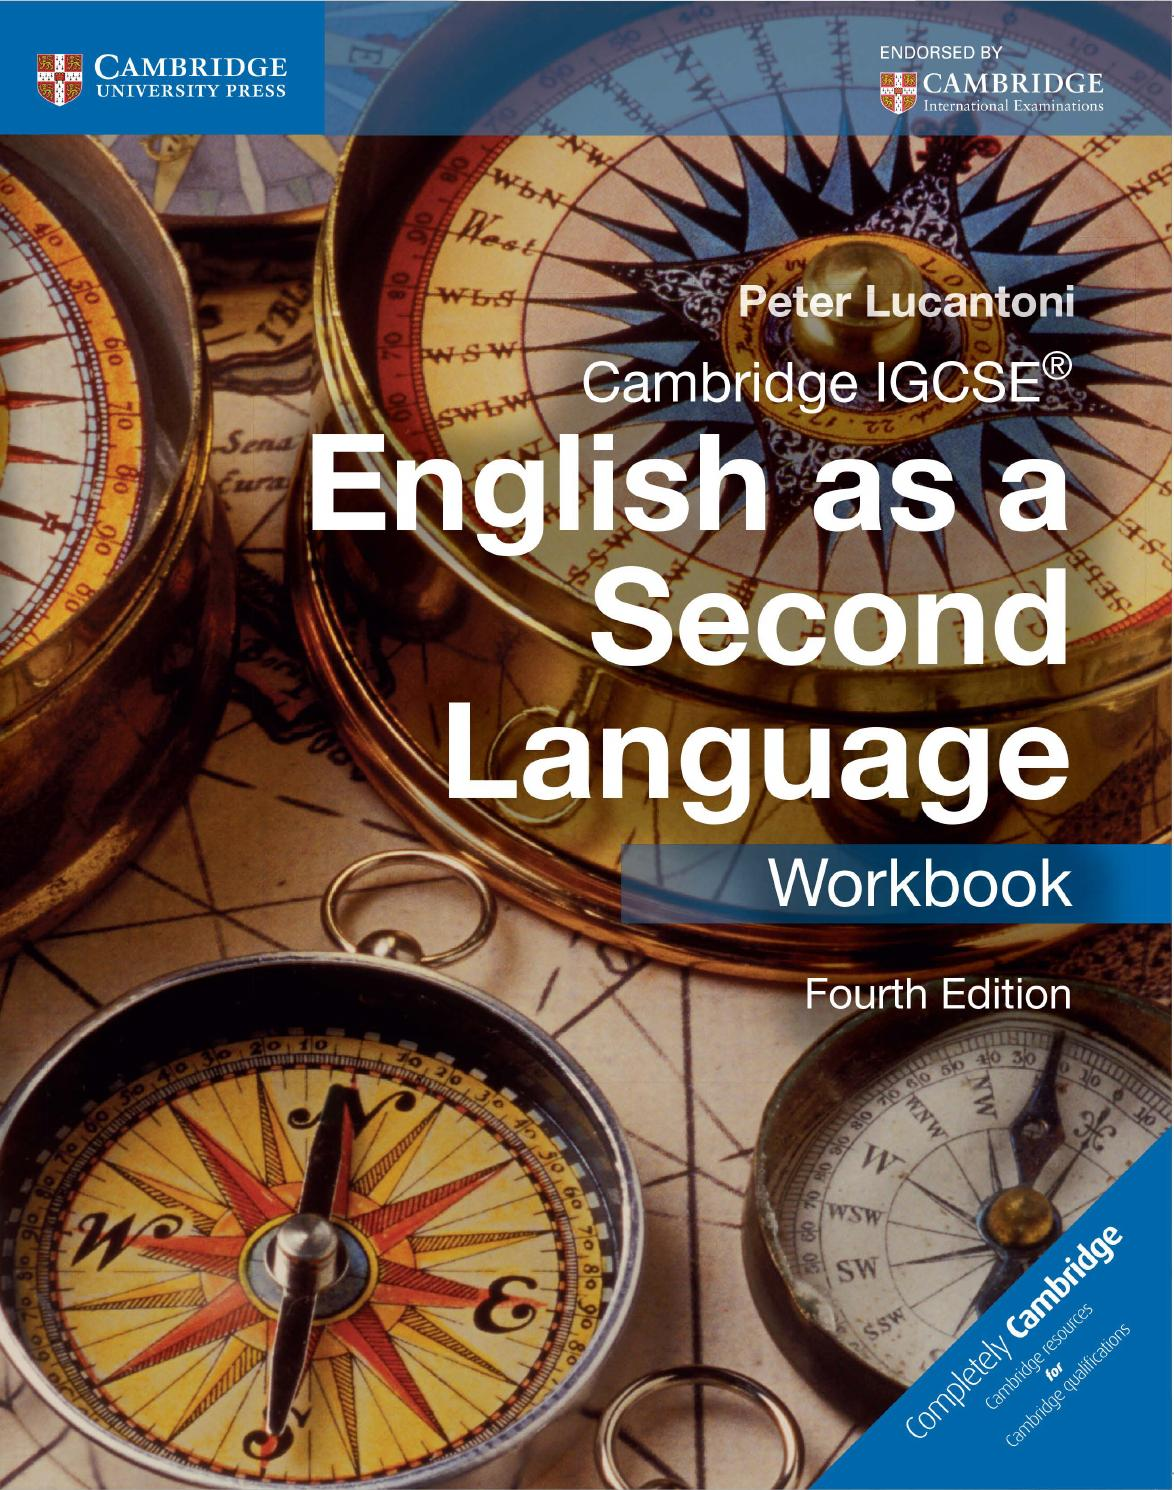 igcse english language a English grammar quizzes test yourself with our selection of 518 free english language quizzes covering grammar, usage and.